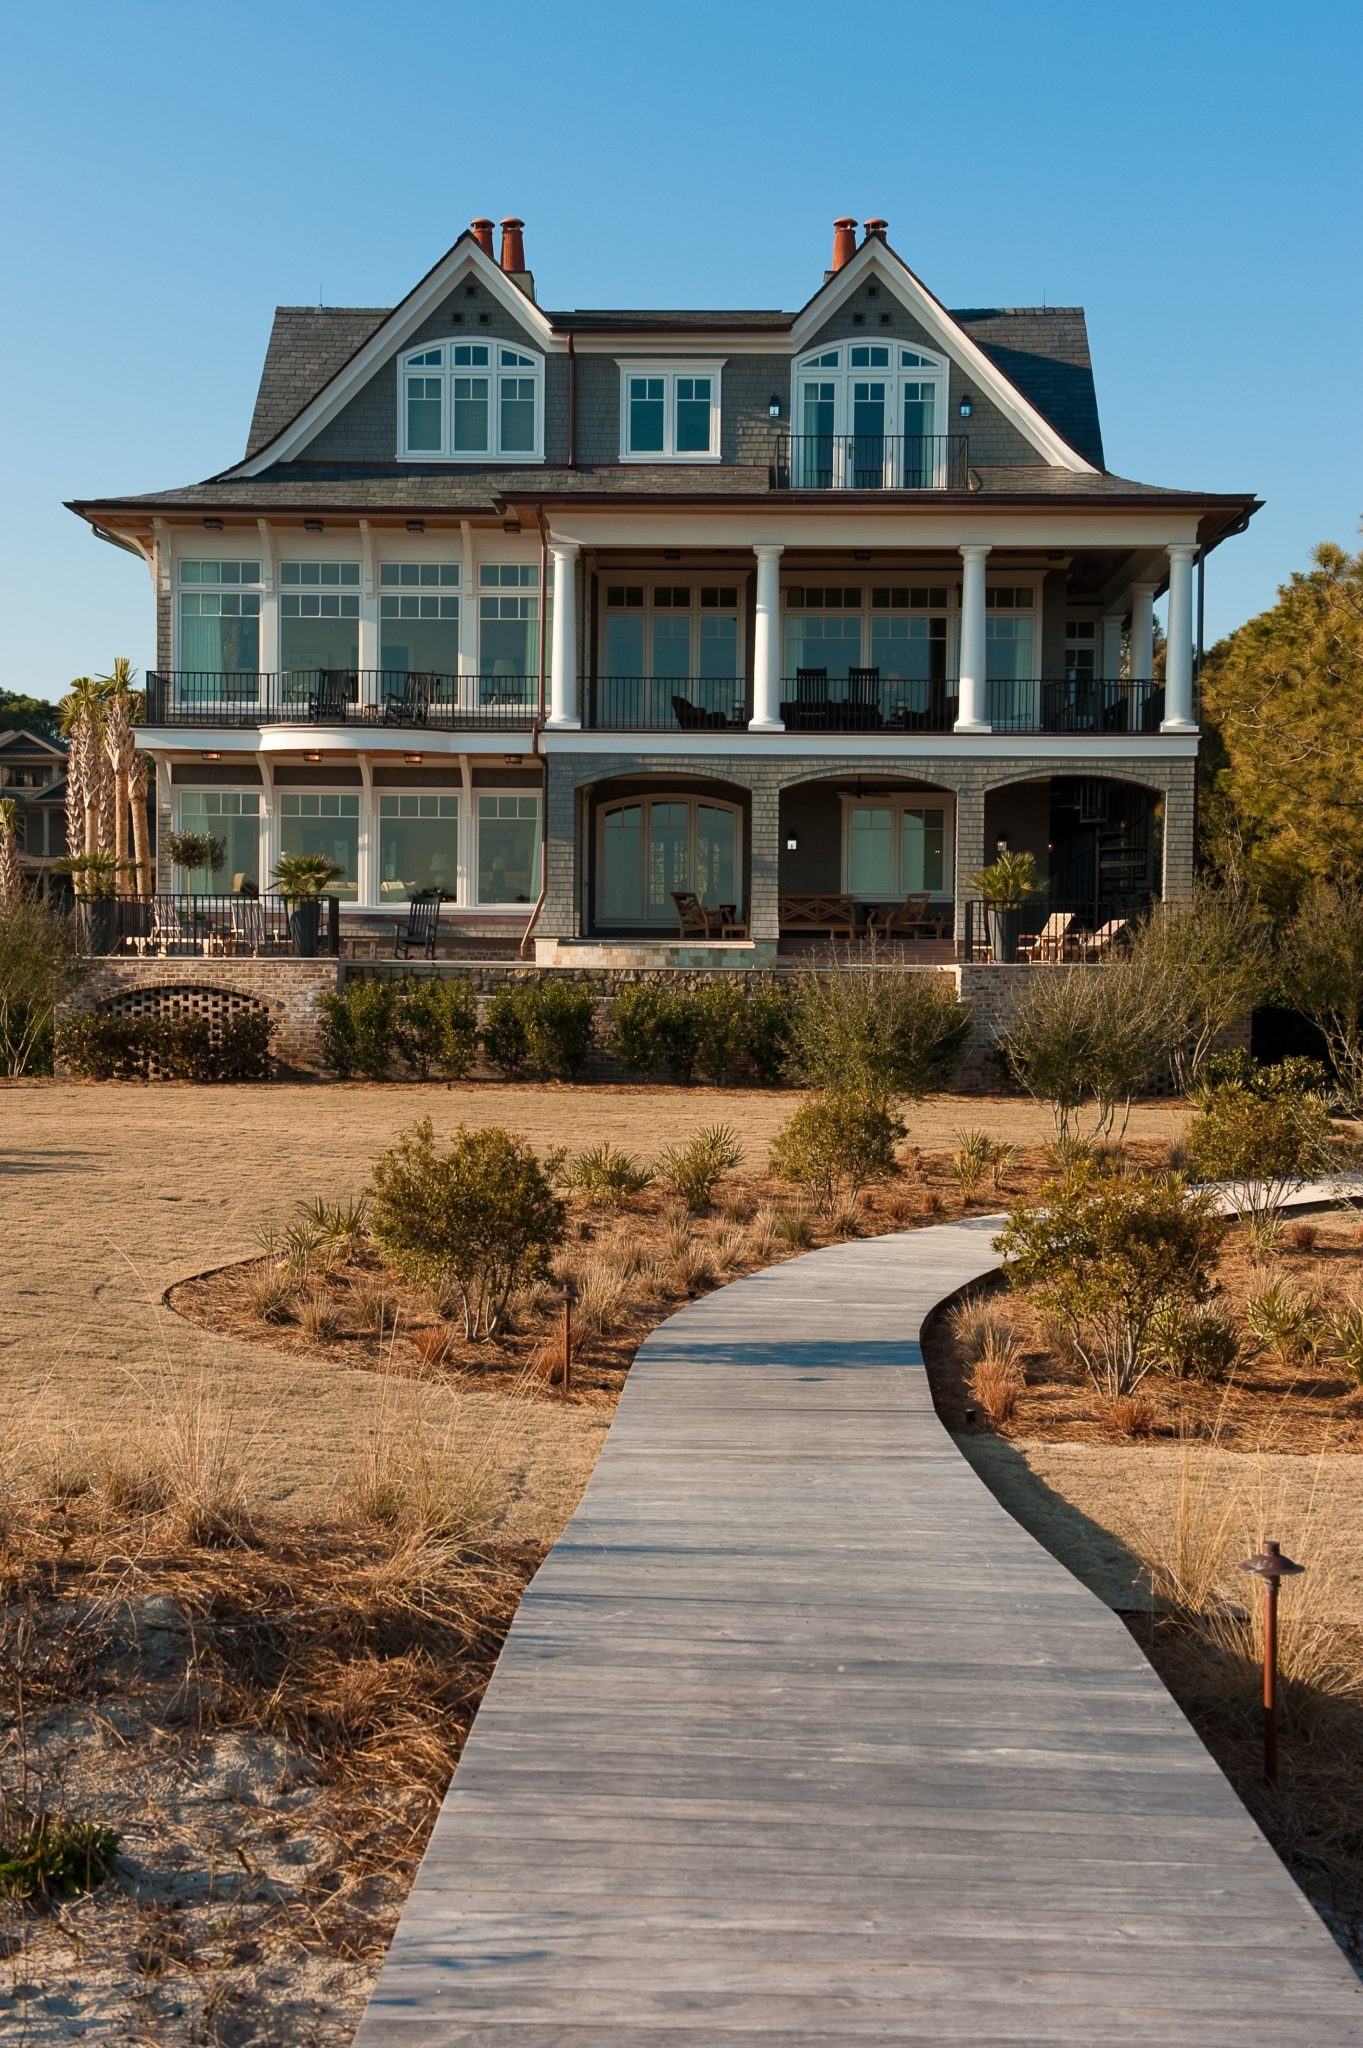 Kiawah Oceanfront Shingle Style Rear Elevation with Loggia and Boardwalk by Island Architects